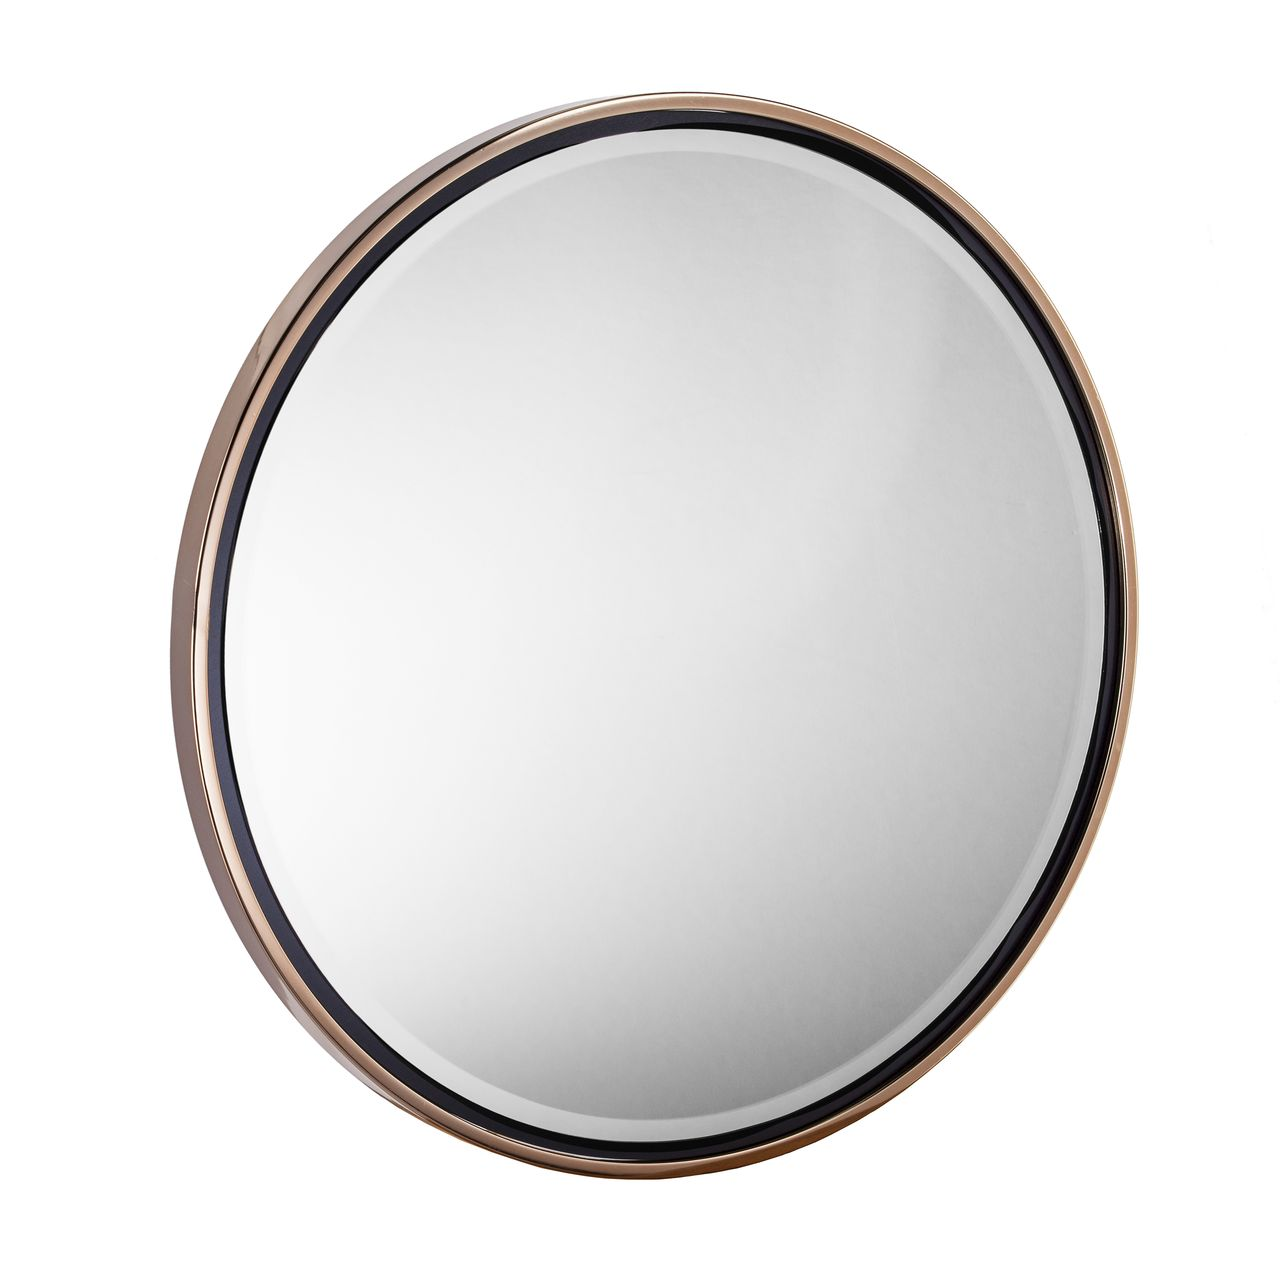 Holly & Martin Wais Round Wall Mirror in Champagne Gold / Black